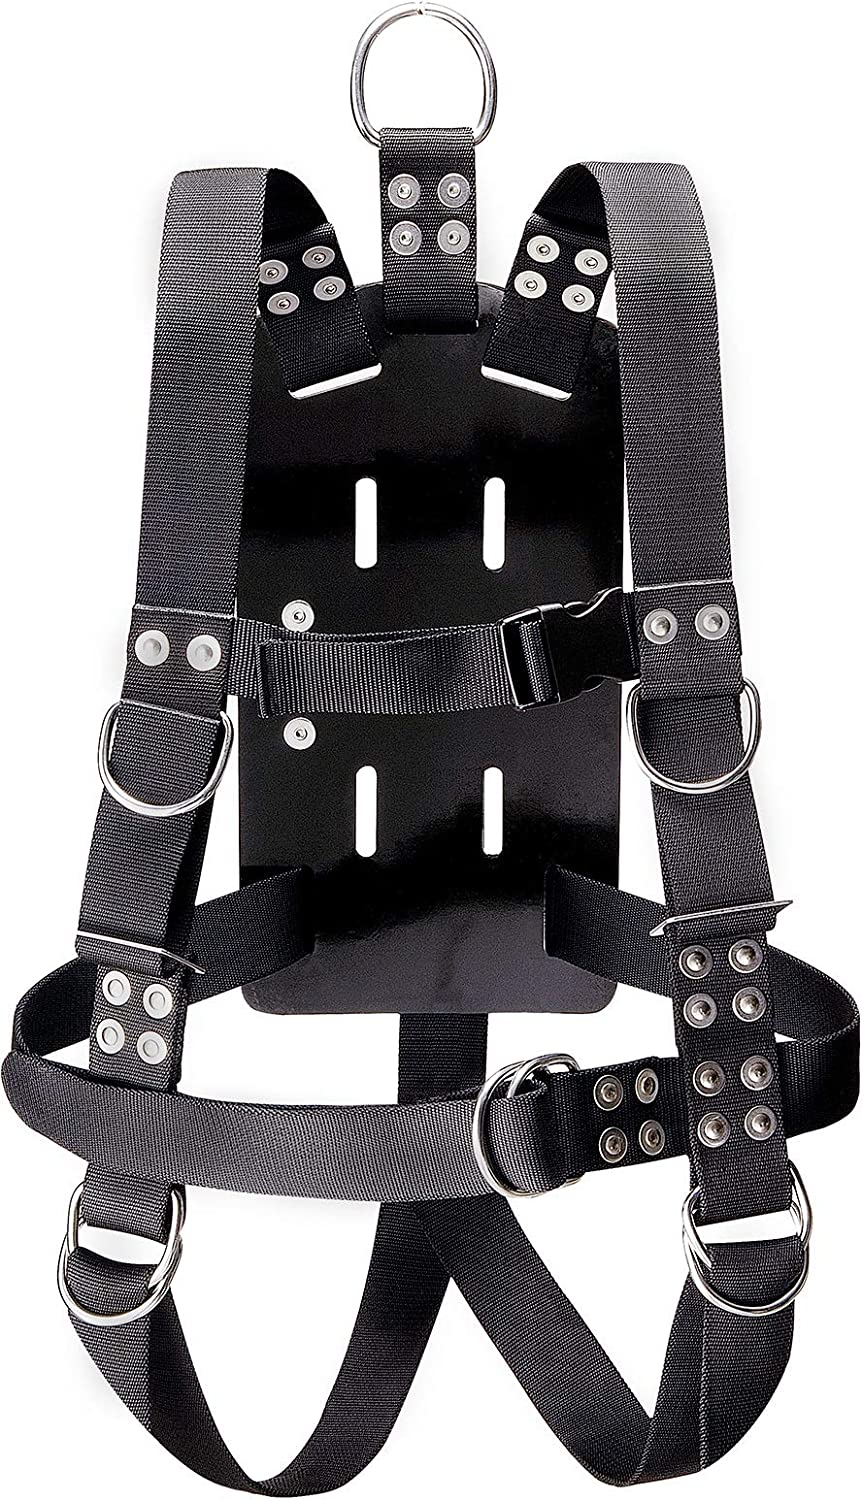 IST Dolphin Tech HHBPII Commercial Diving Harness